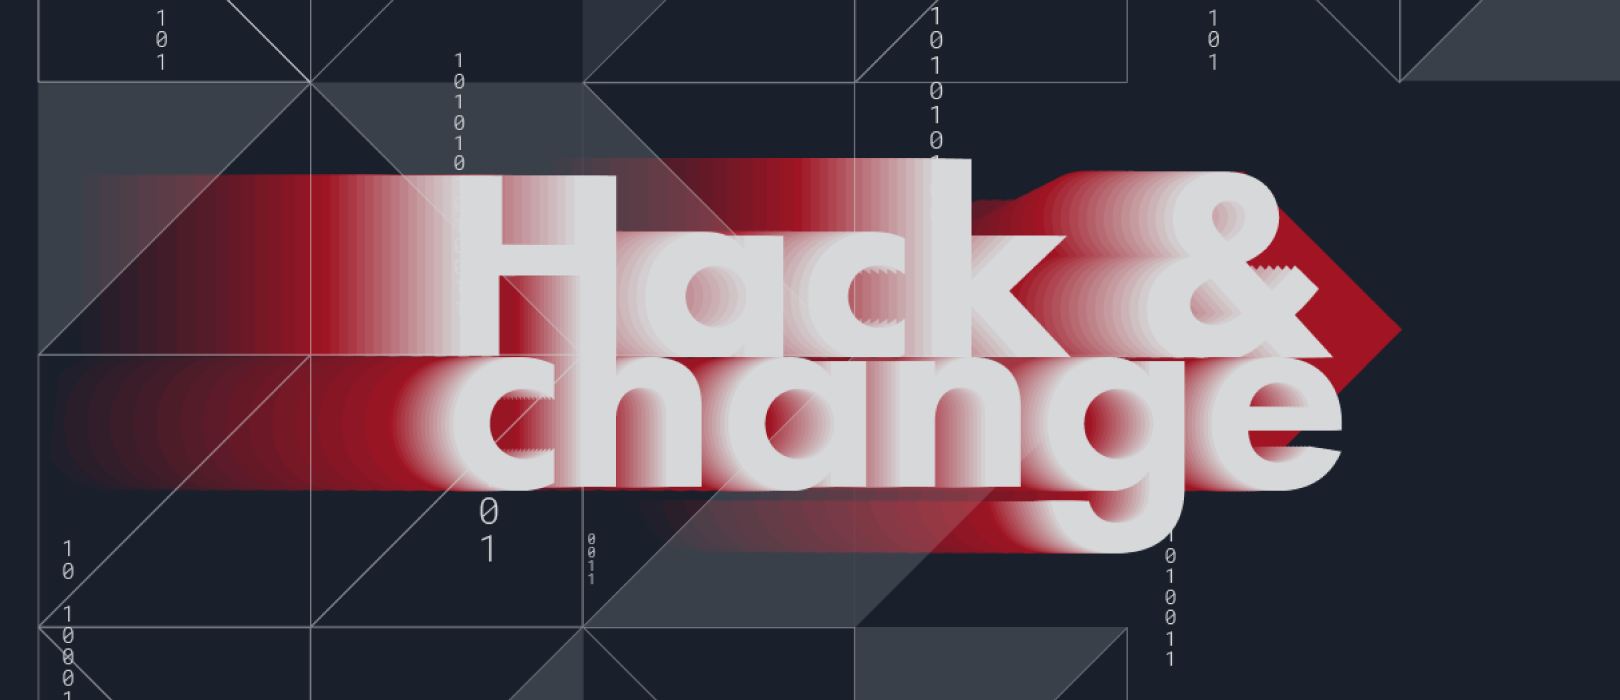 Rectangle 3.2 1 1 - Why hackathons are great